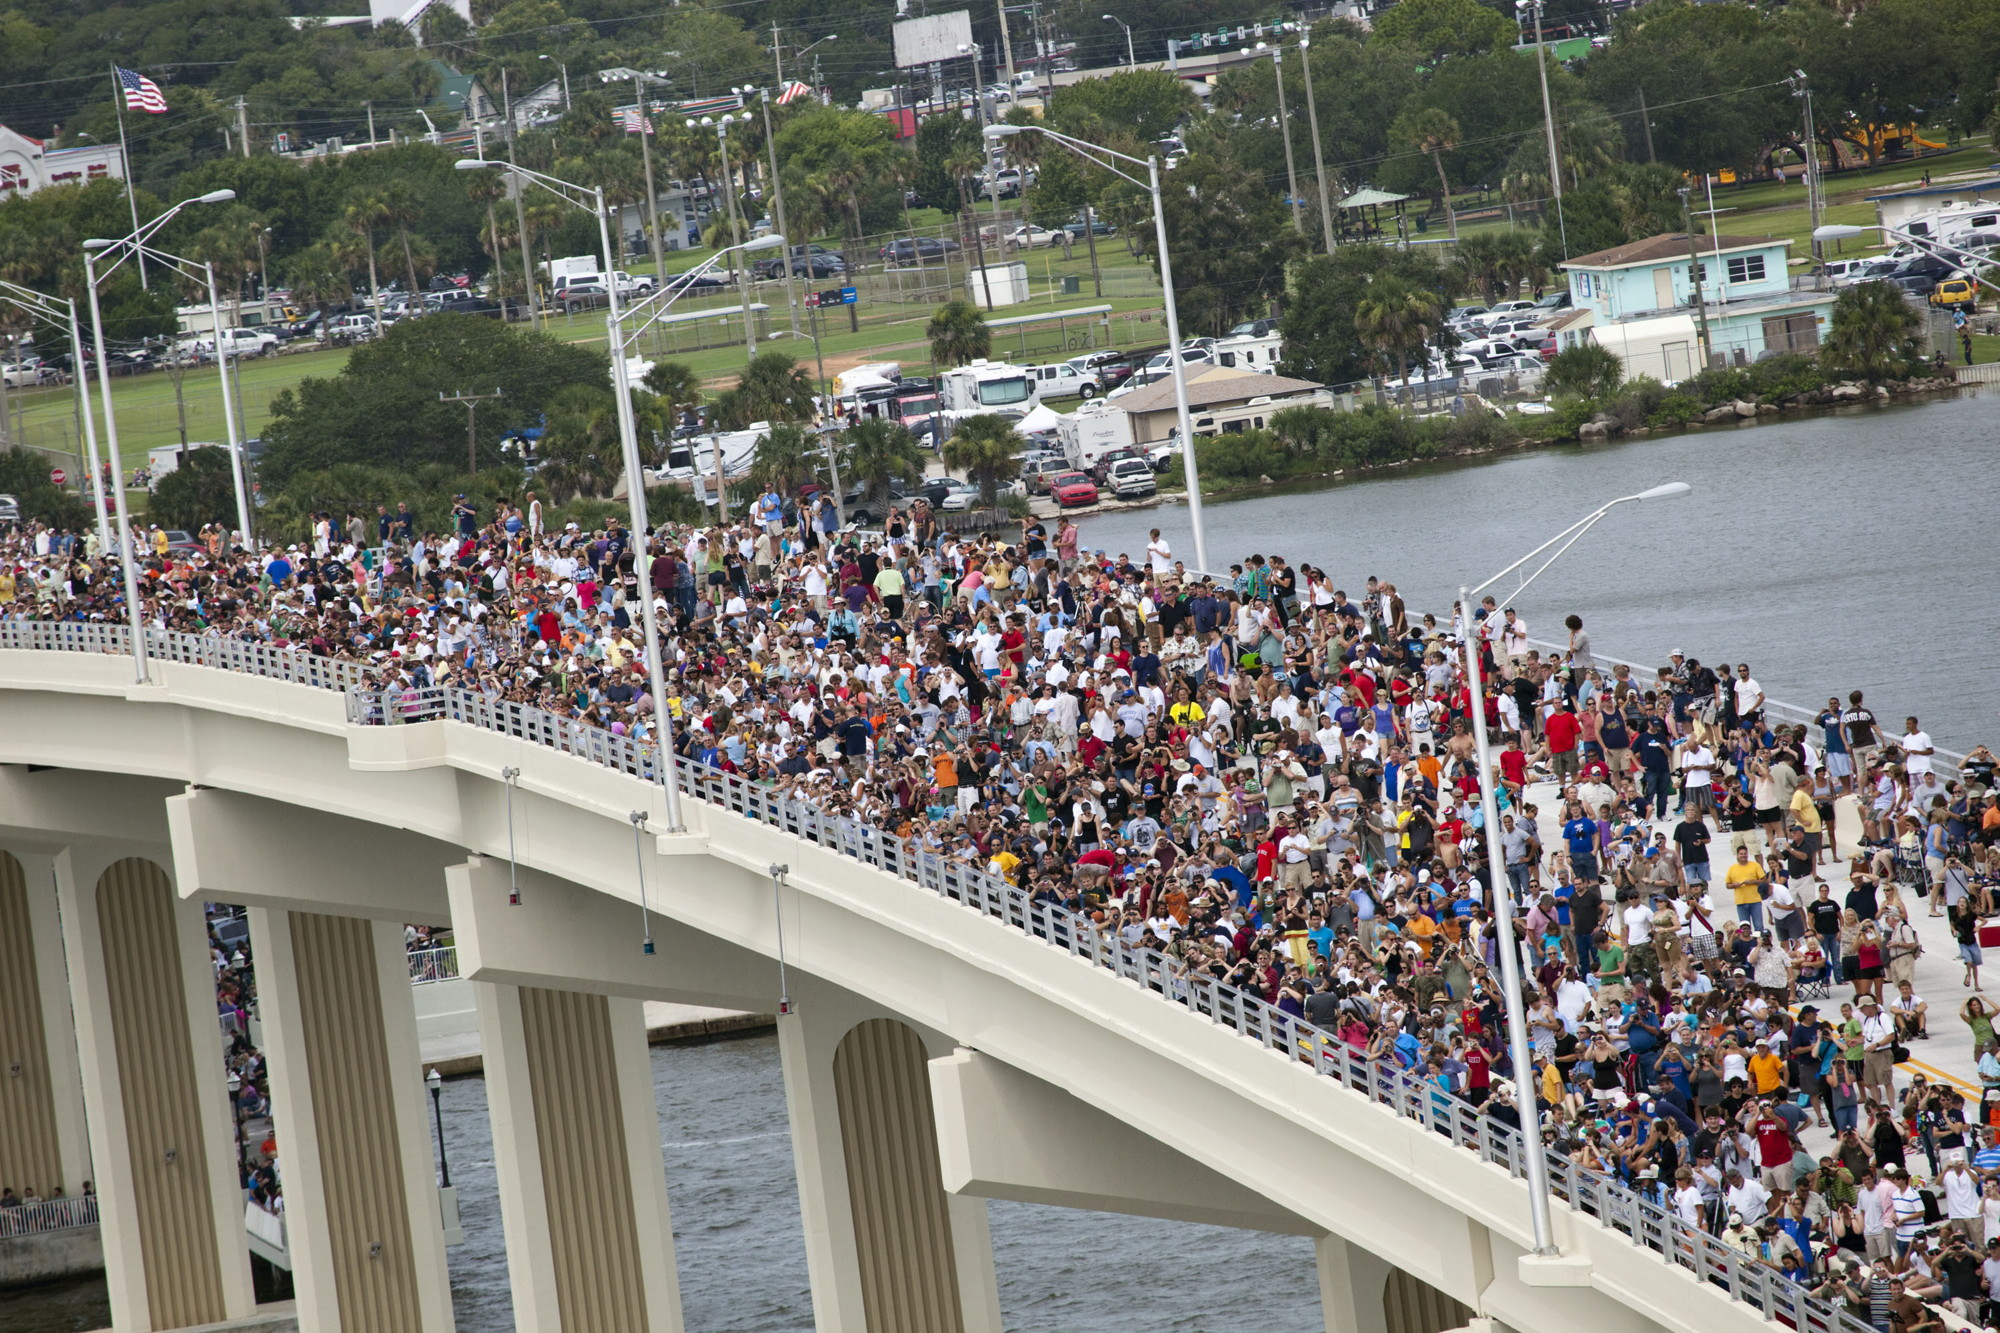 STS-135 Launch Spectators on the A. Max Brewer Bridge in Titusville, Florida